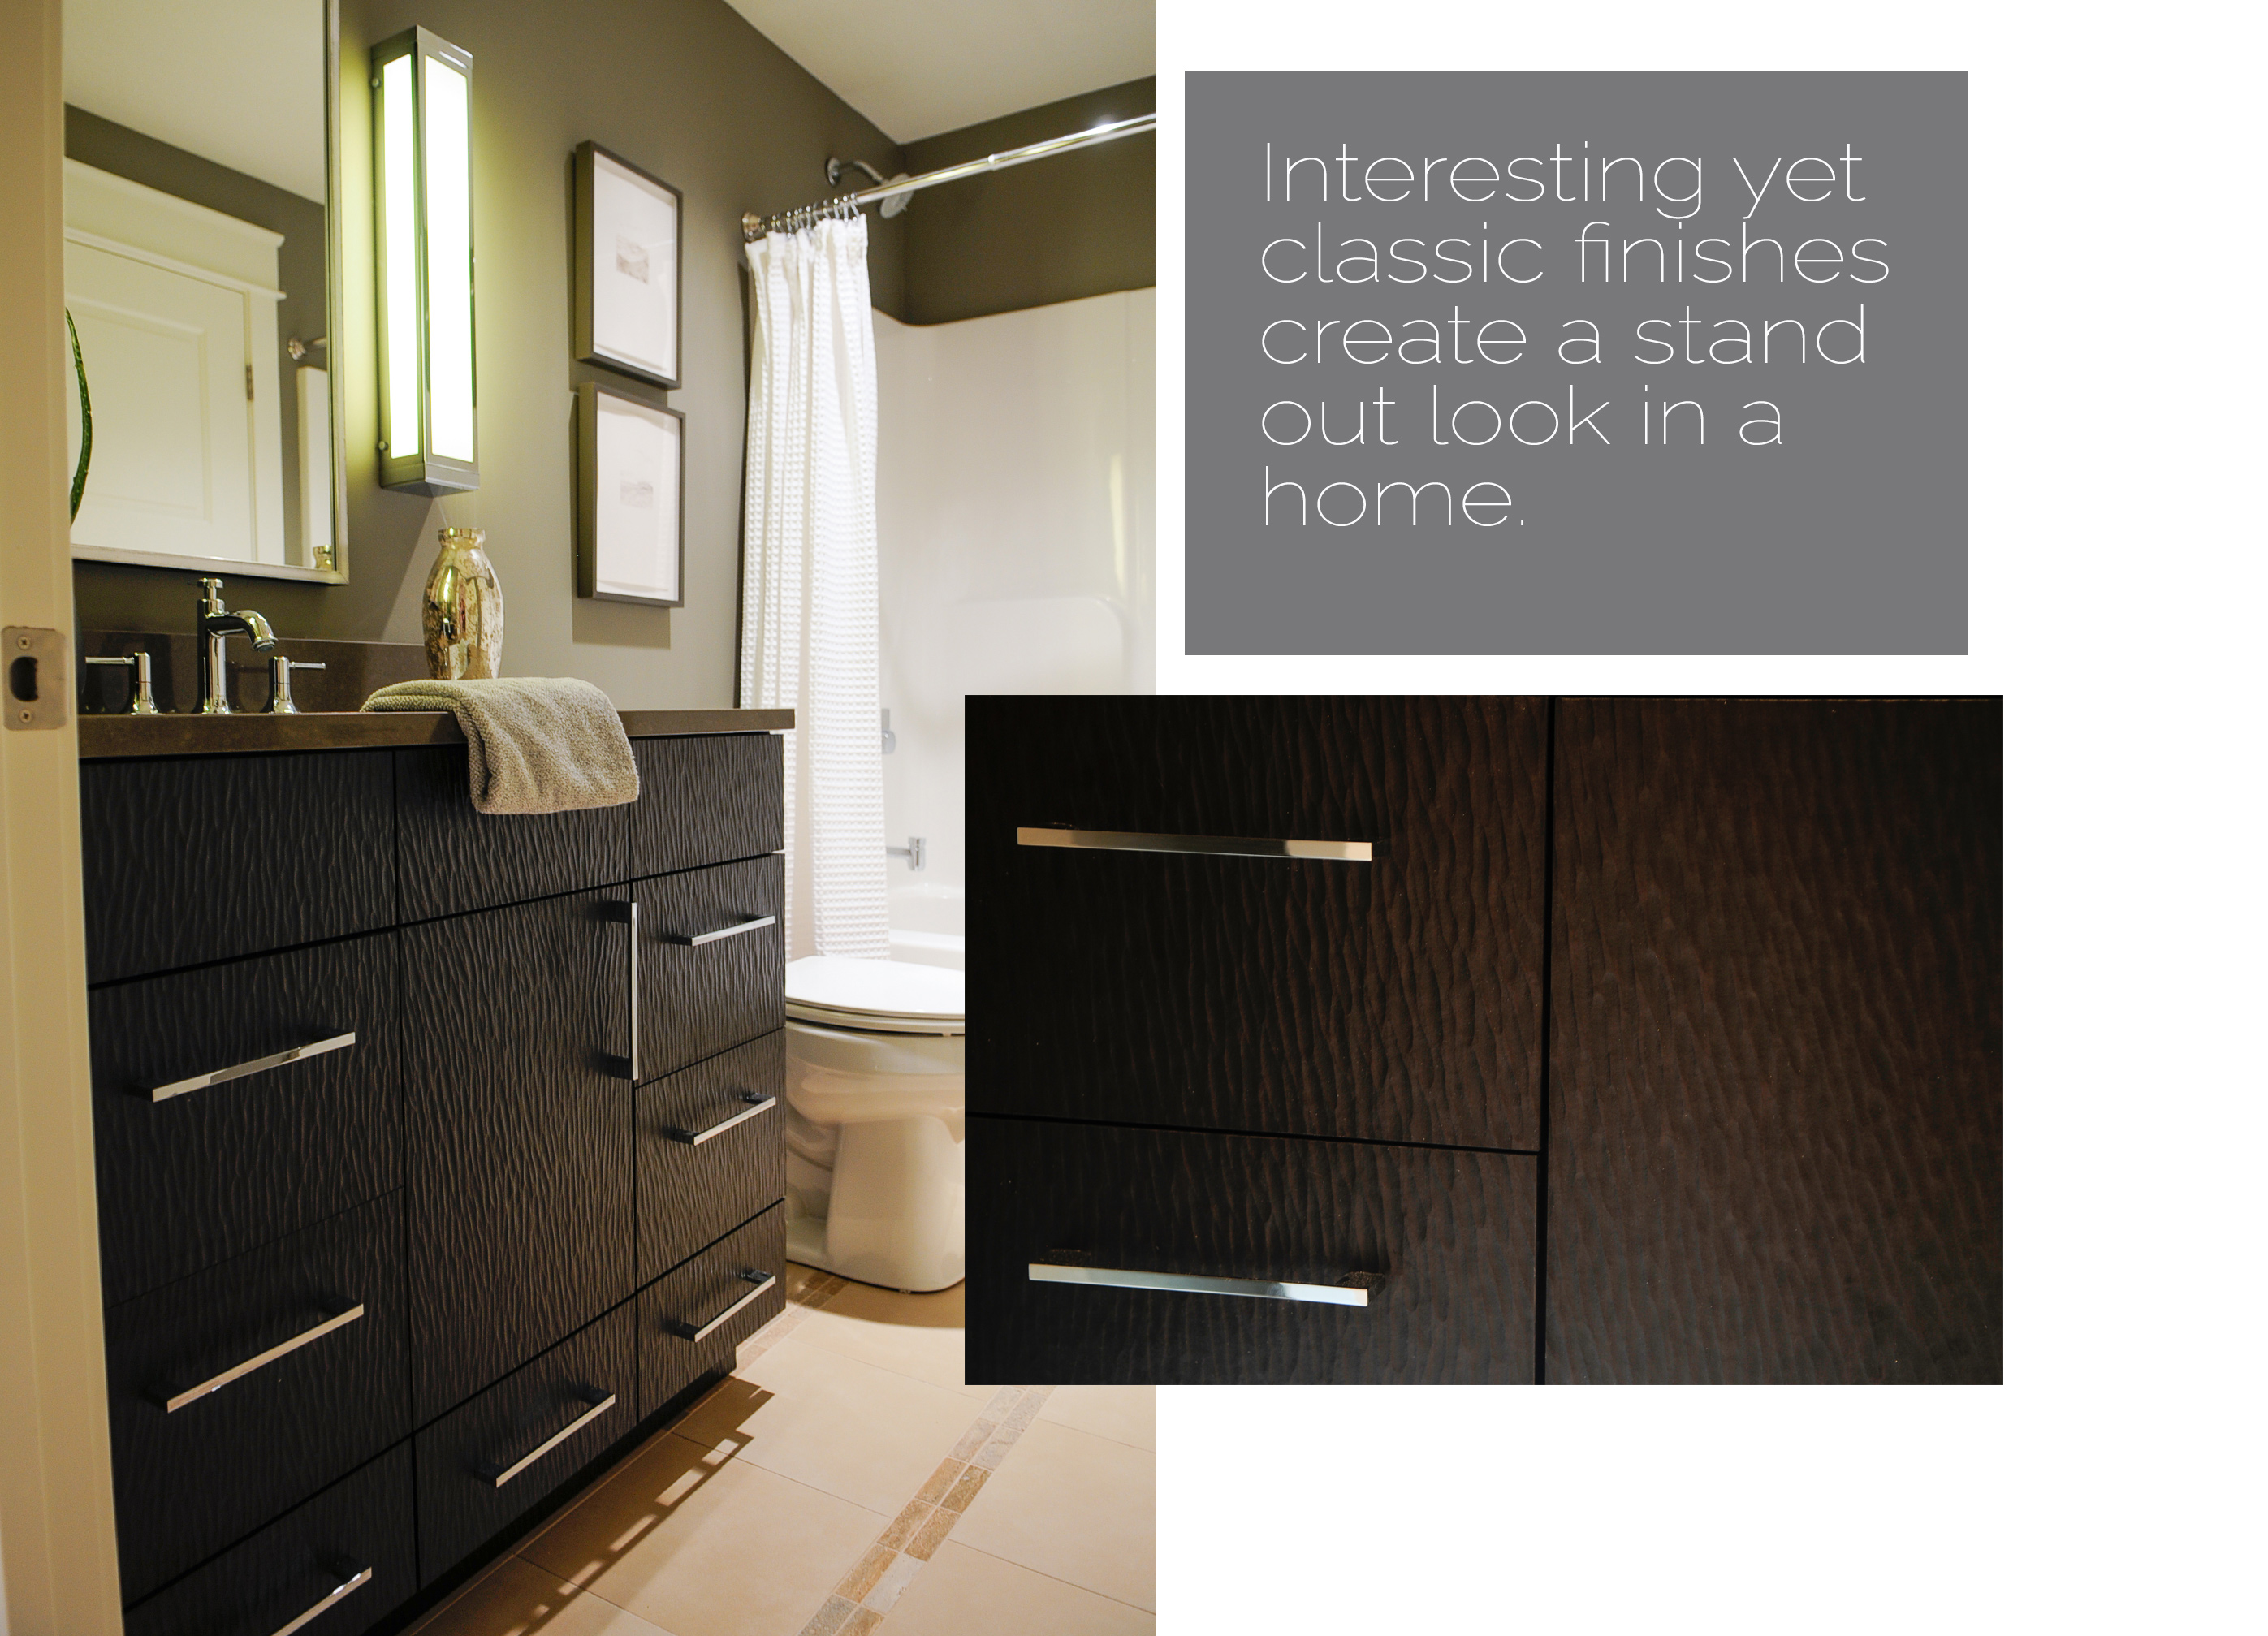 Used kitchen cabinets des moines - Images By West Wind Photography